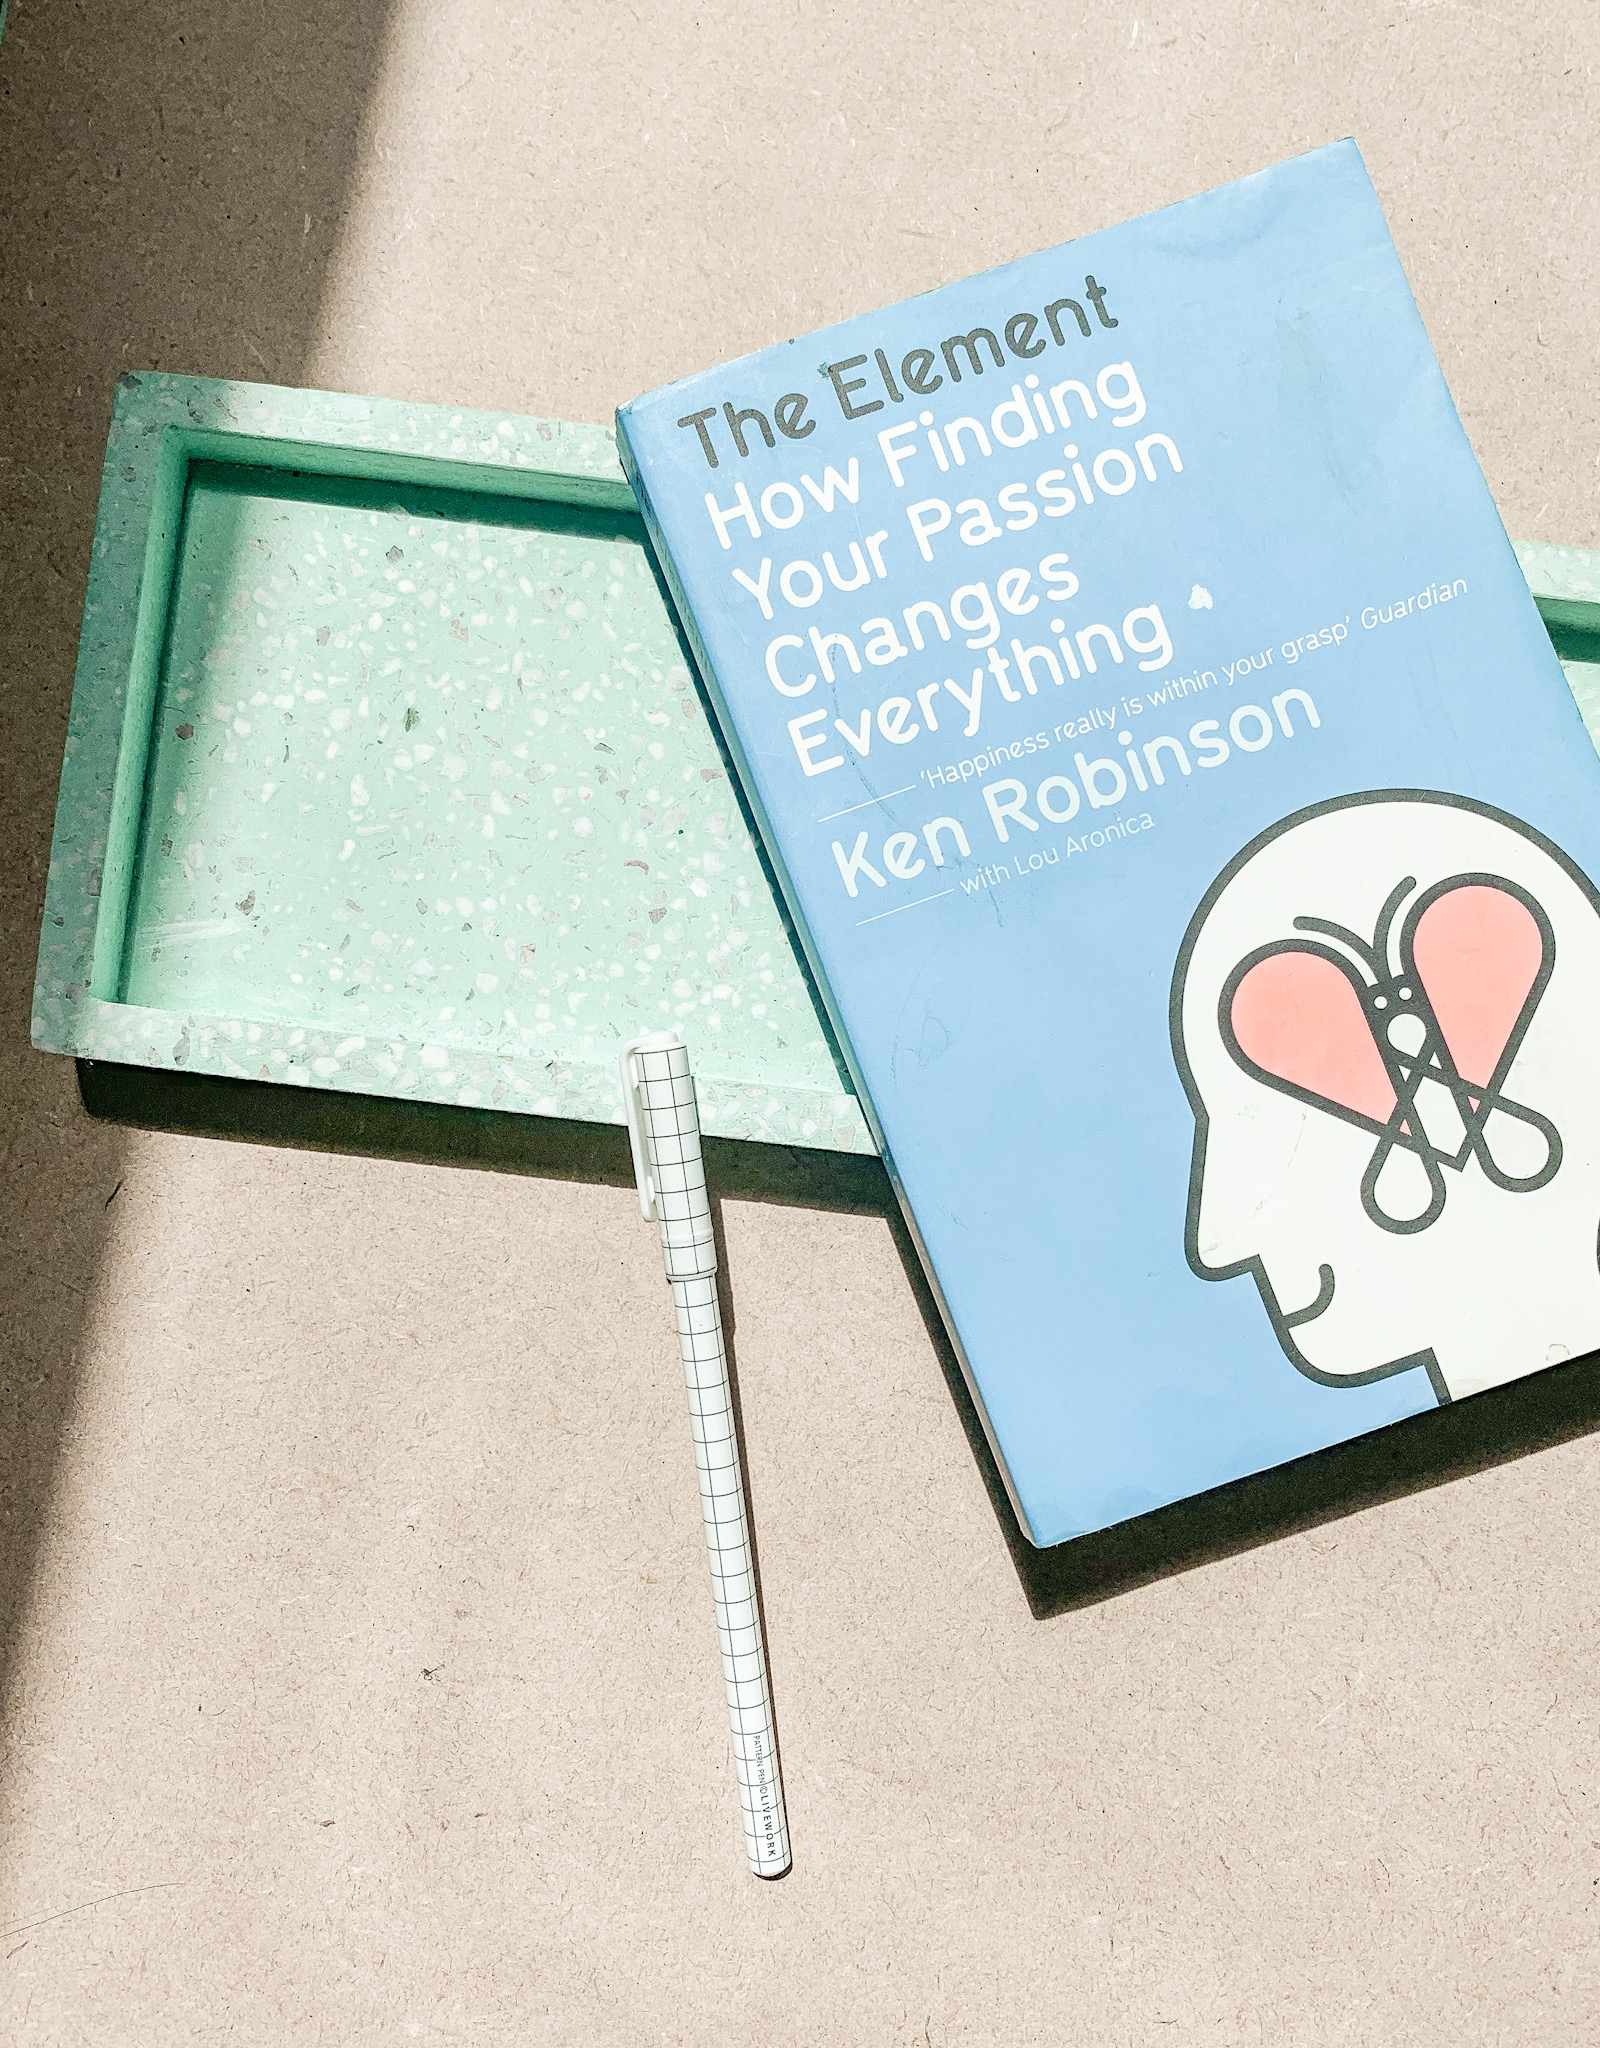 Pouss Design creative small business books Ken Robinson Your Passion Changes Everything